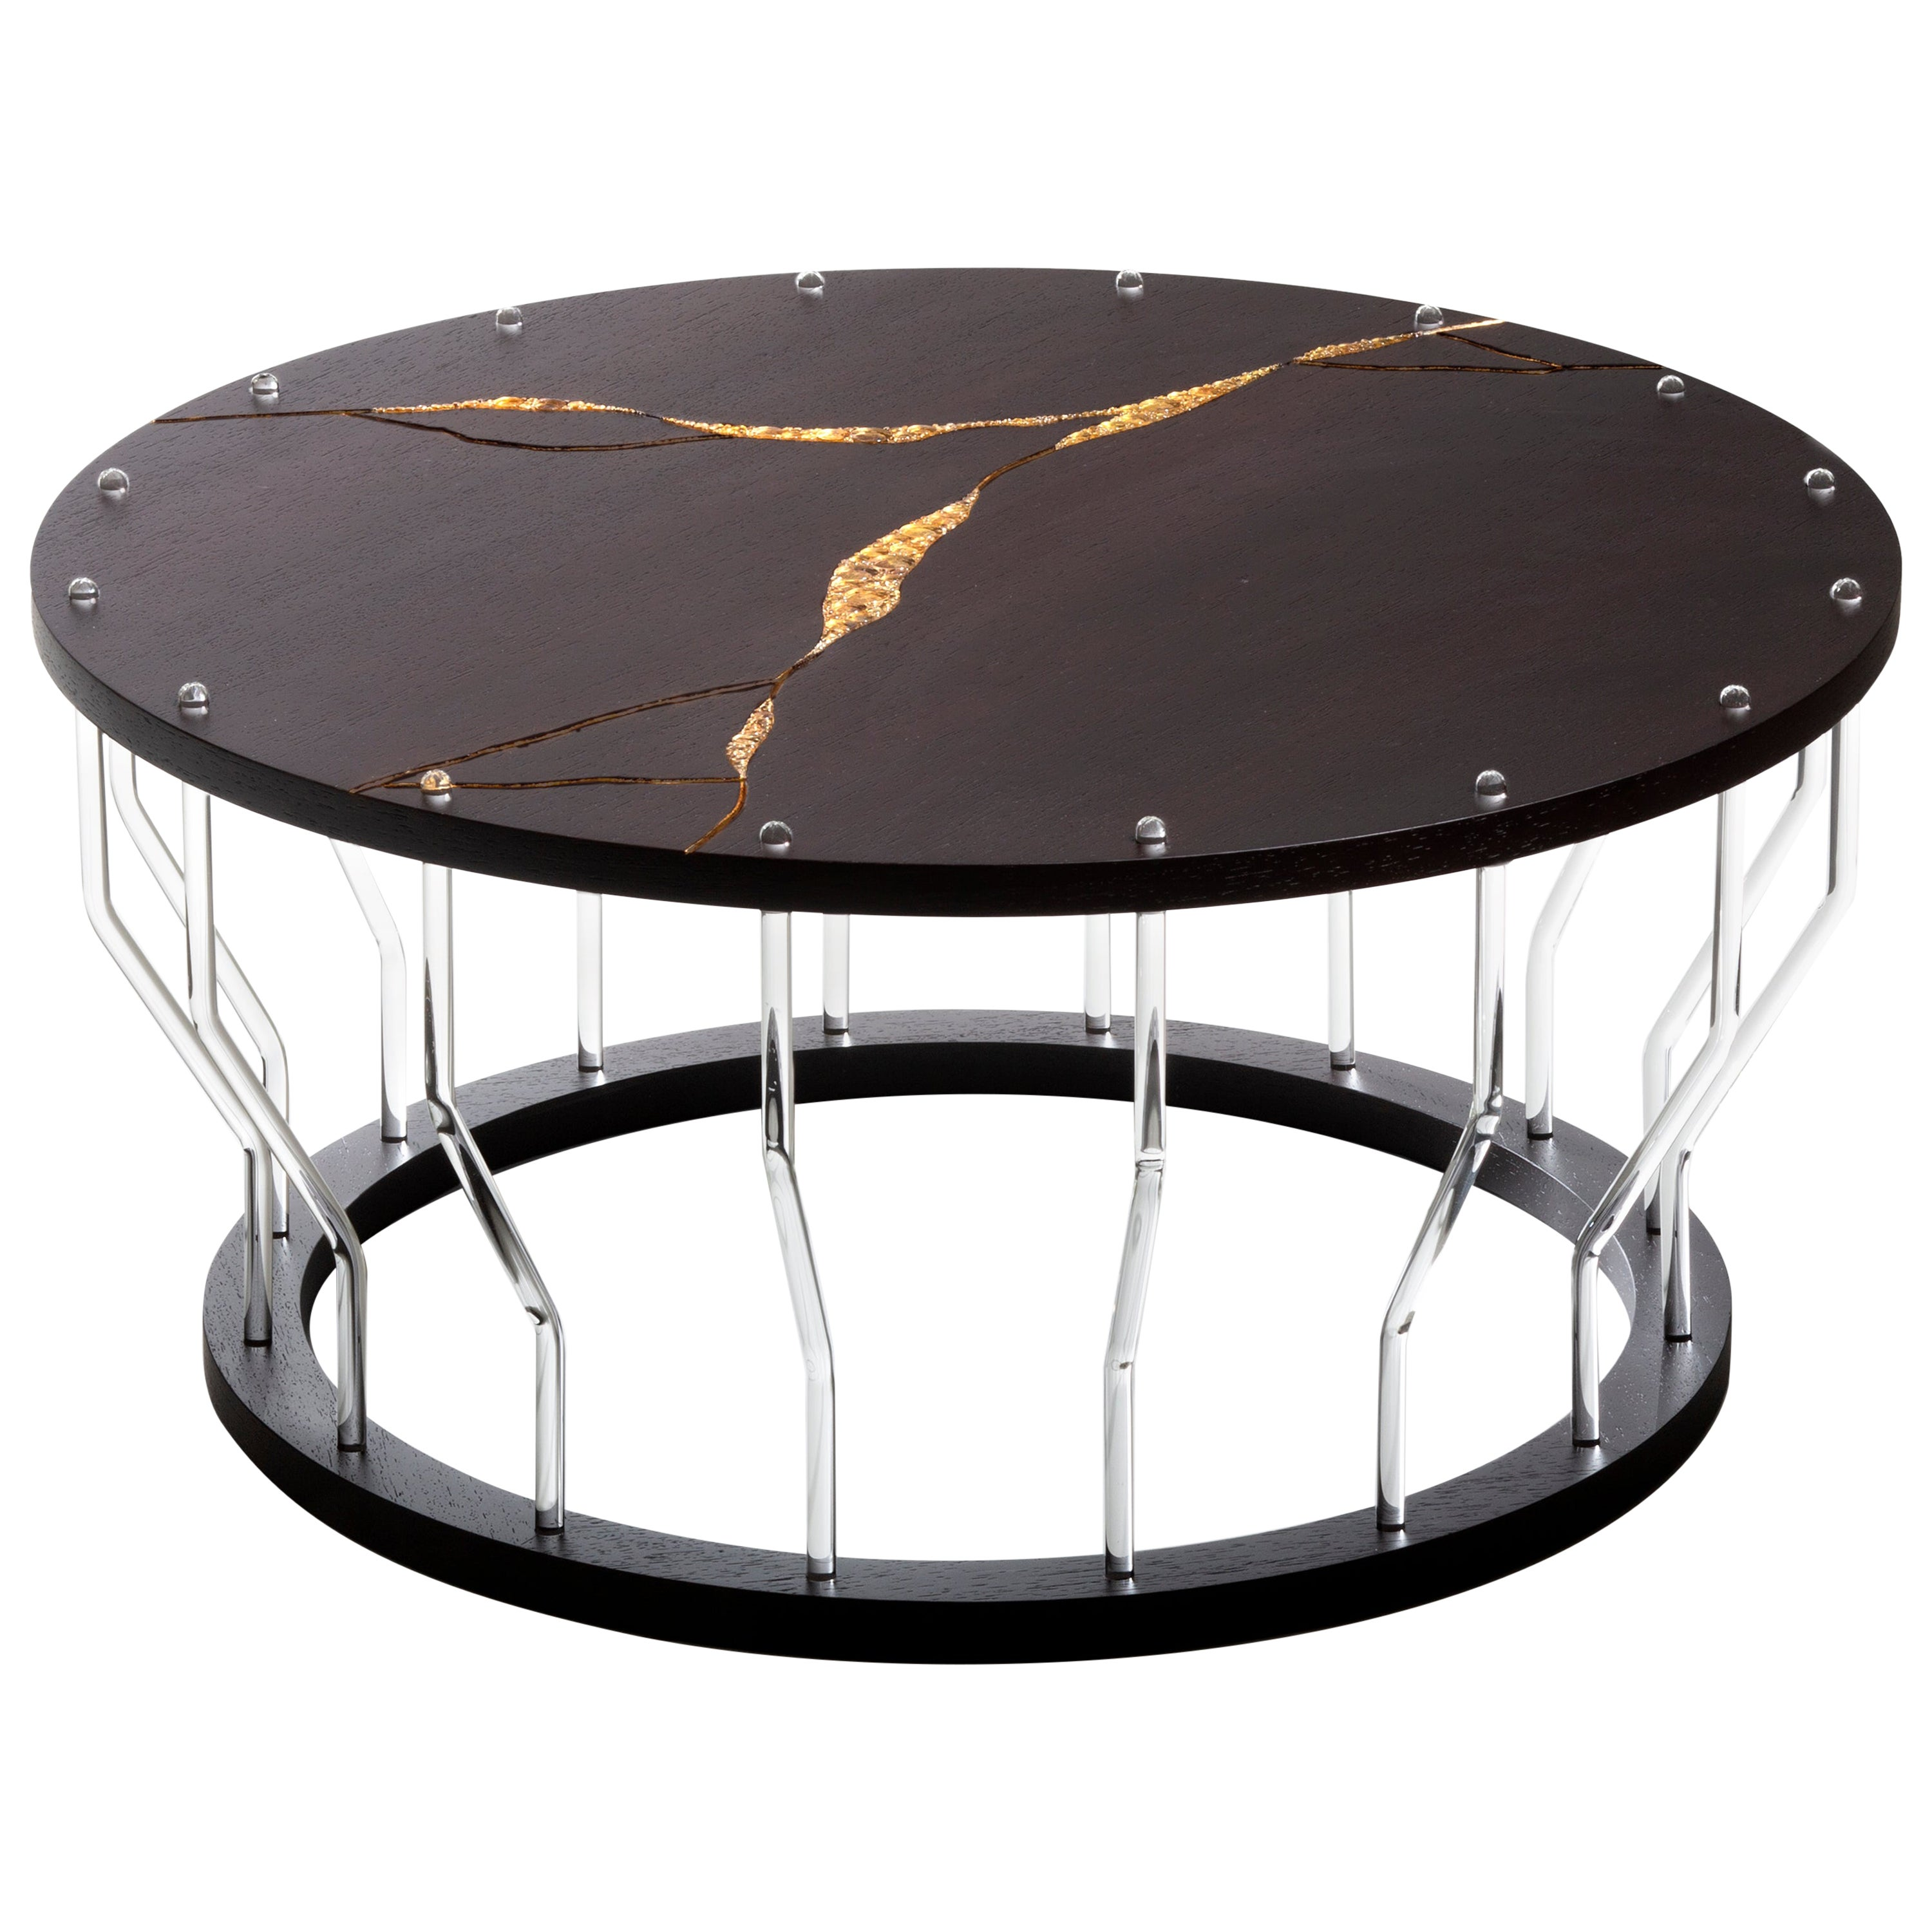 Wood and Glass Coffee Table Handmade by Giordano Viganò and Simone Crestani